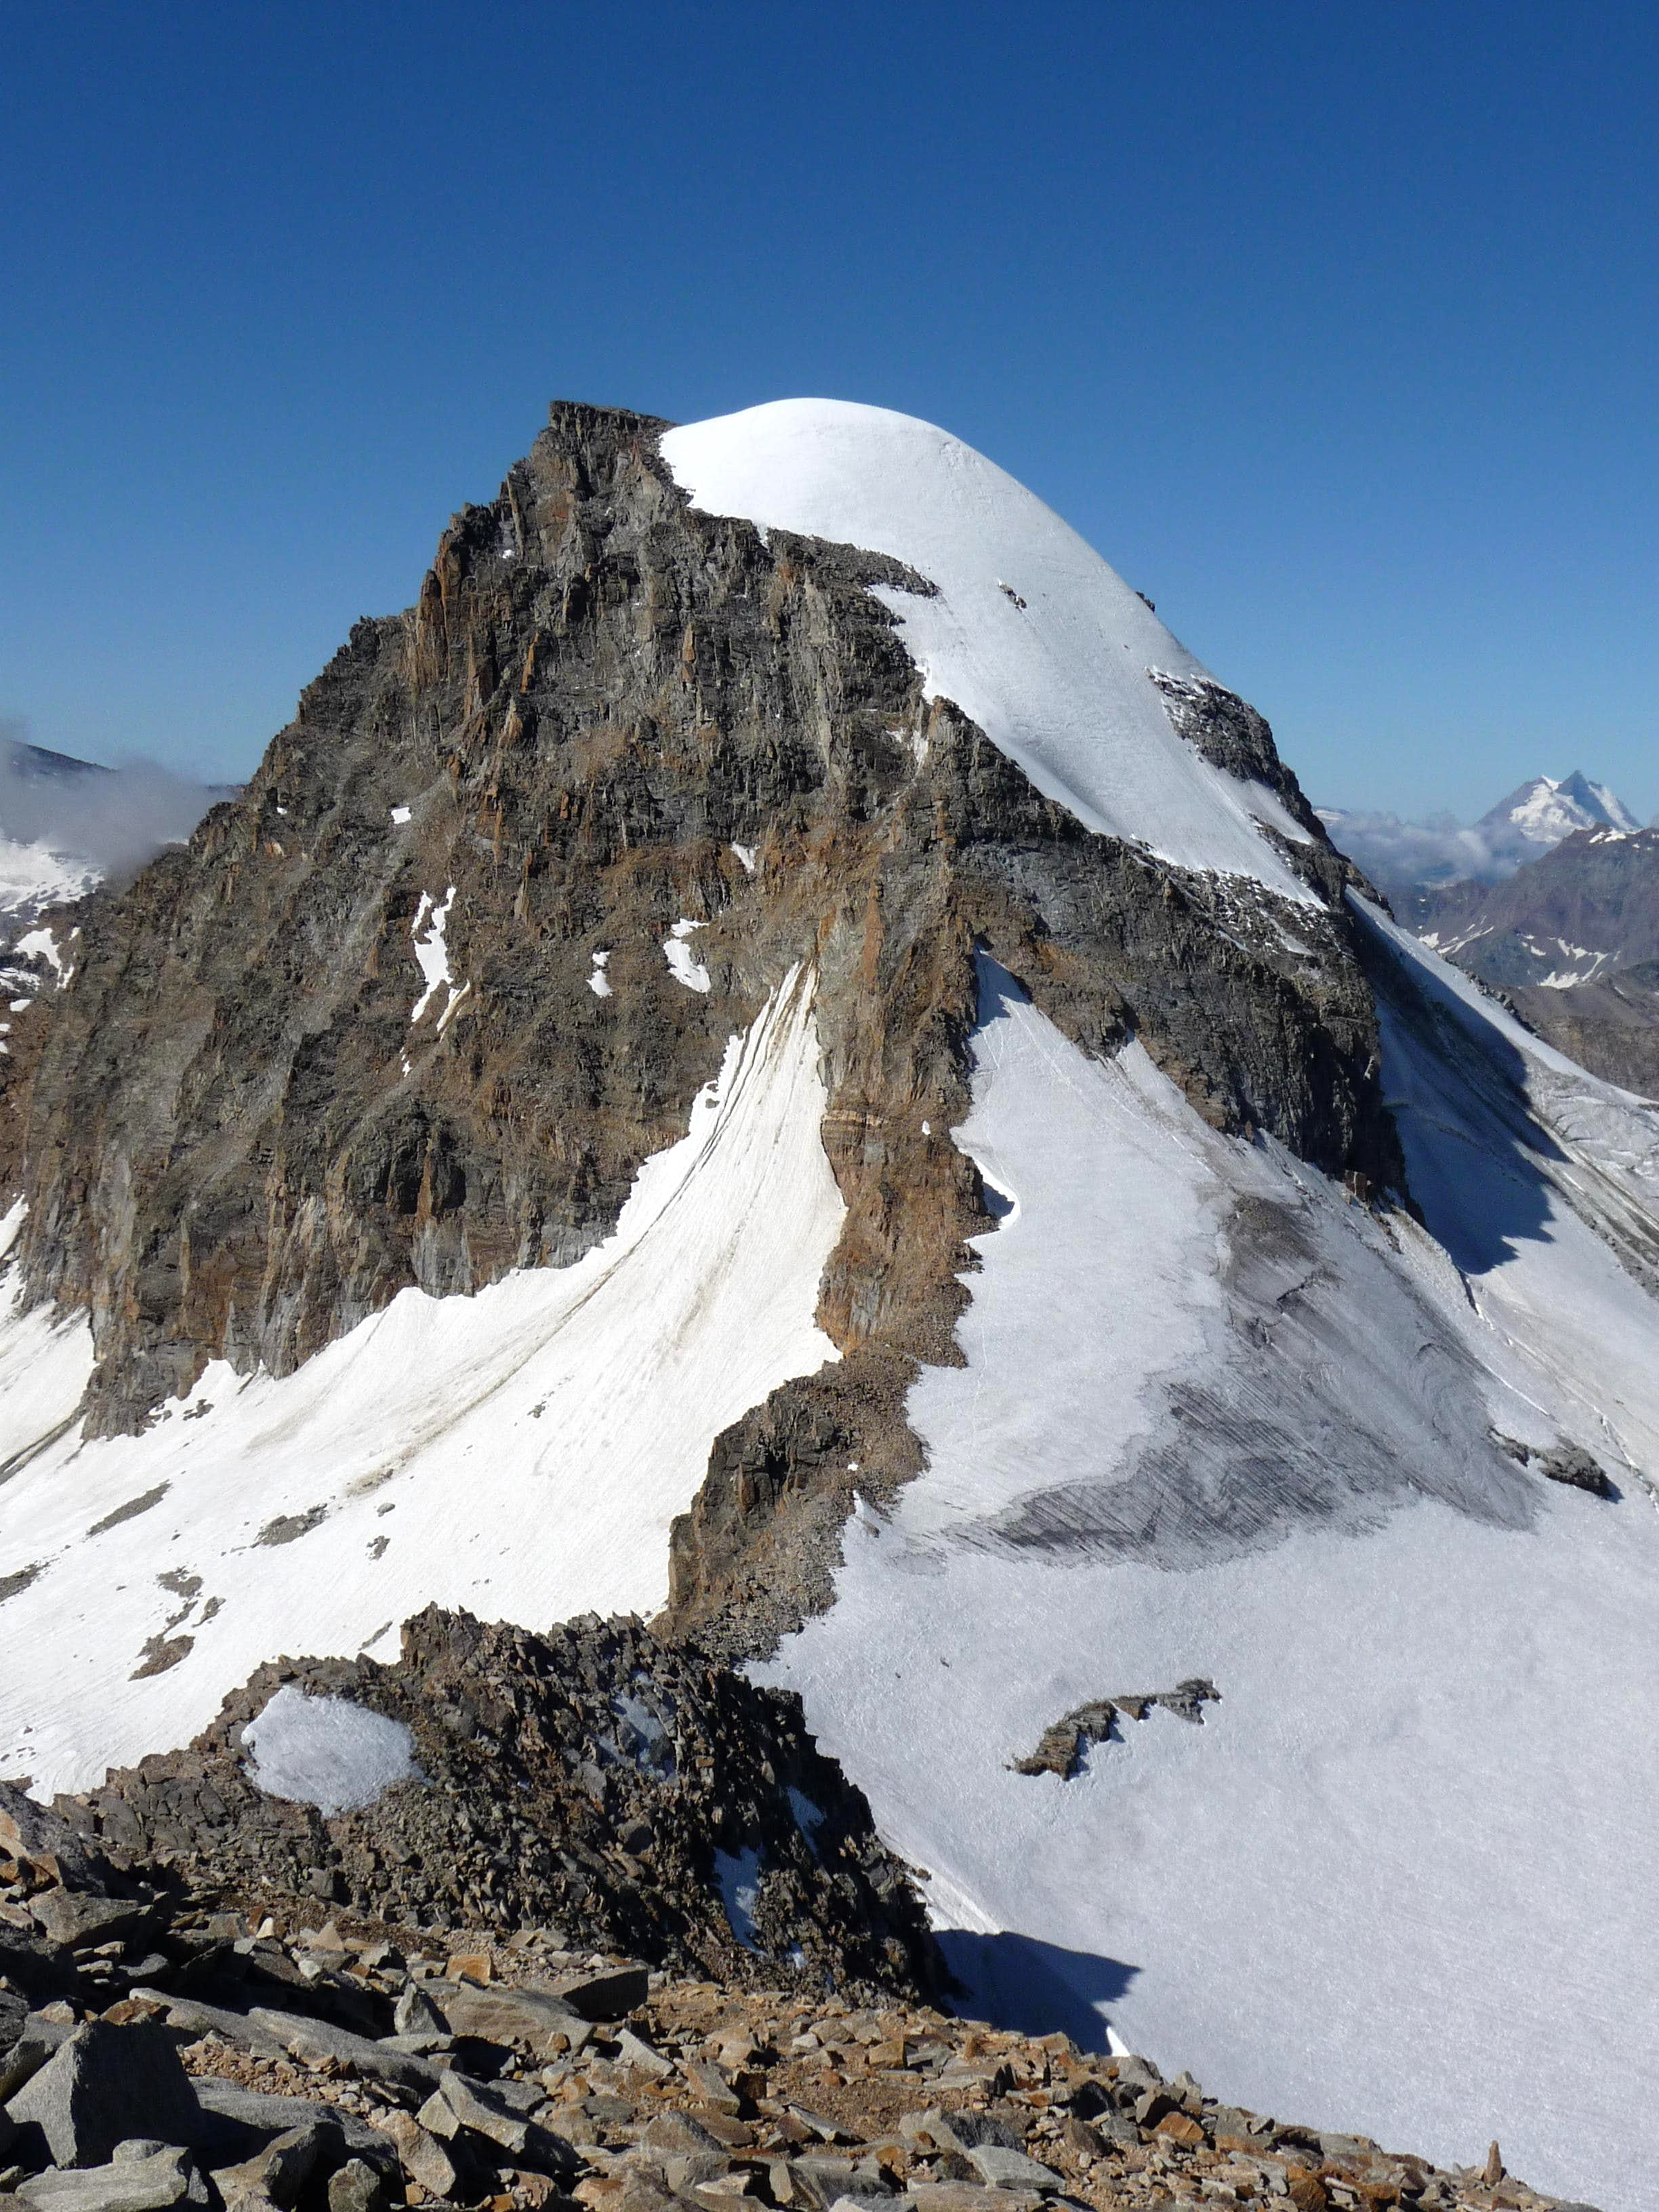 Ciarforon North Face and Normal Routes (3.642m)